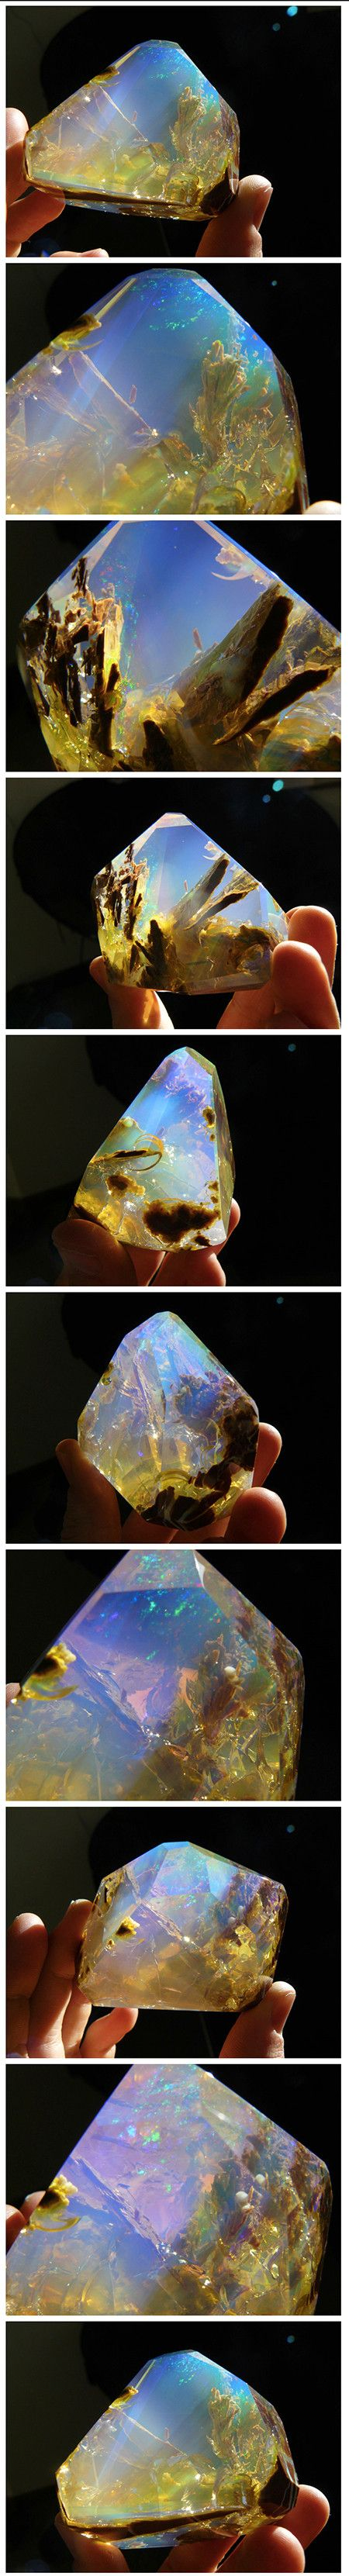 Crystals and gems are revered and collected for their physical beauty and monetary value and this Opal Butte crystal with contra luz color is no exception. The stunning gemstone, like many opals, features a varied spectrum of colors, but what separates it from the others is its spectacular visual effect. It looks like an underwater view of the ocean floor as light shines through it. There's a surreal quality about the gemstone that looks like a pocket-sized aquarium.